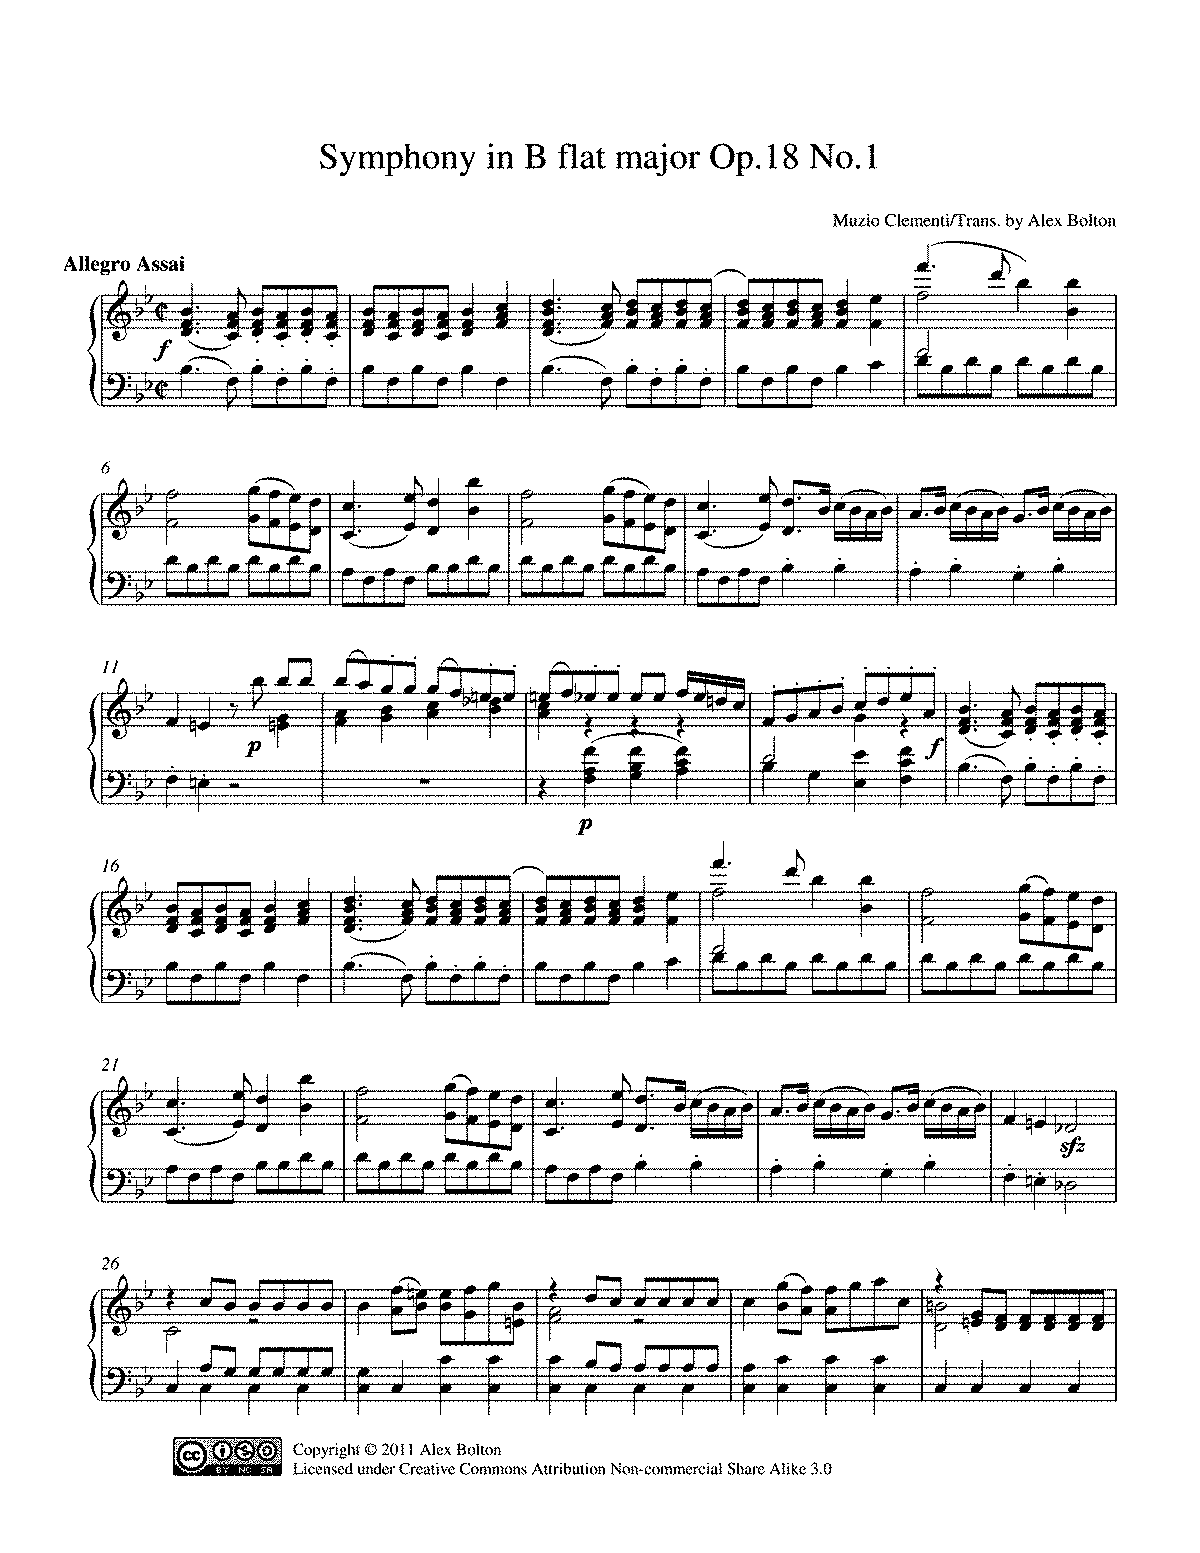 PMLP160103-Clementi Symphony in B flat major Op 18 No 1 (2H Bolton).pdf